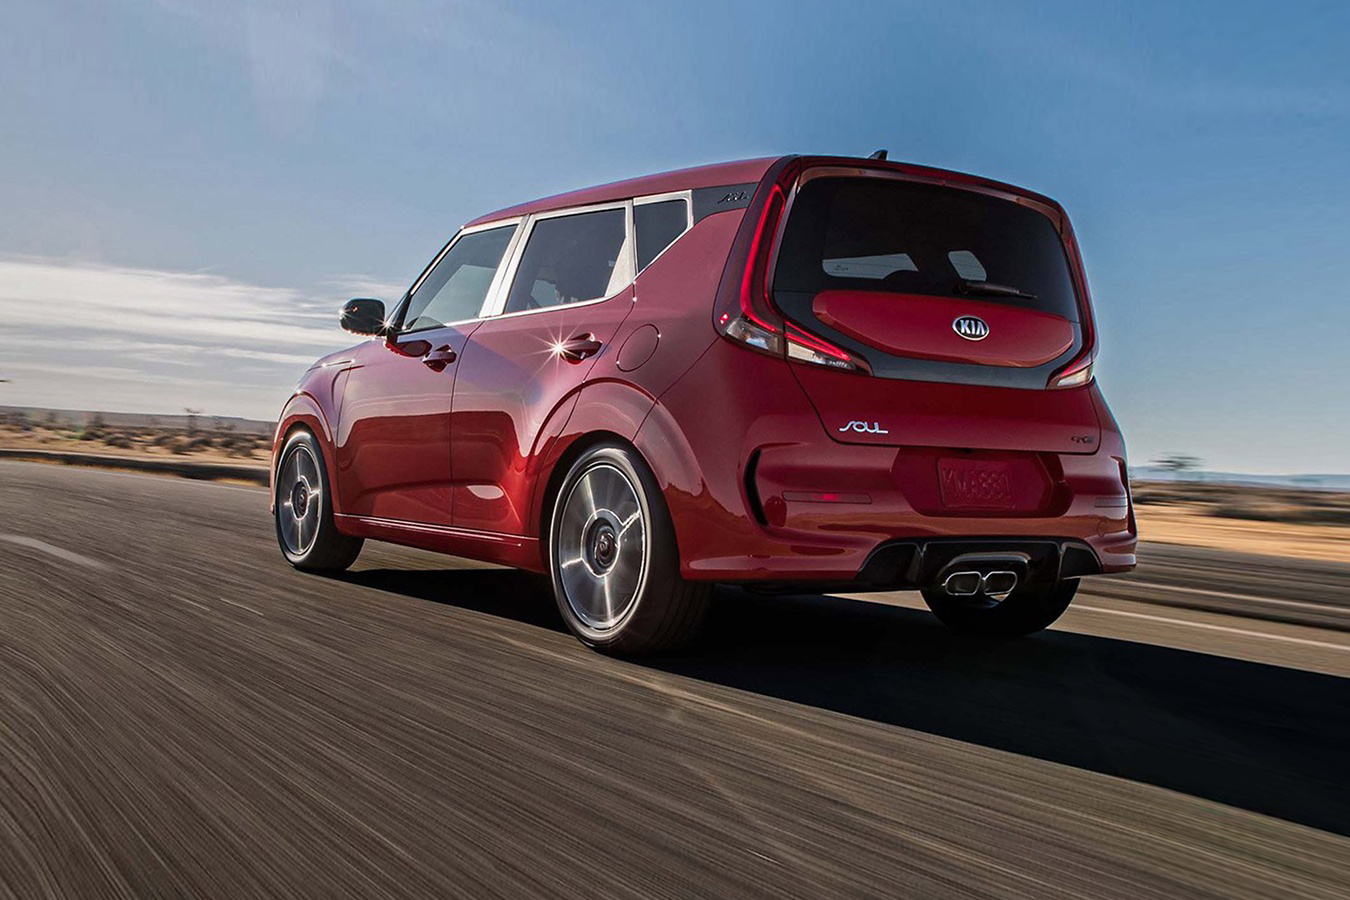 2020 Kia Soul driving down road